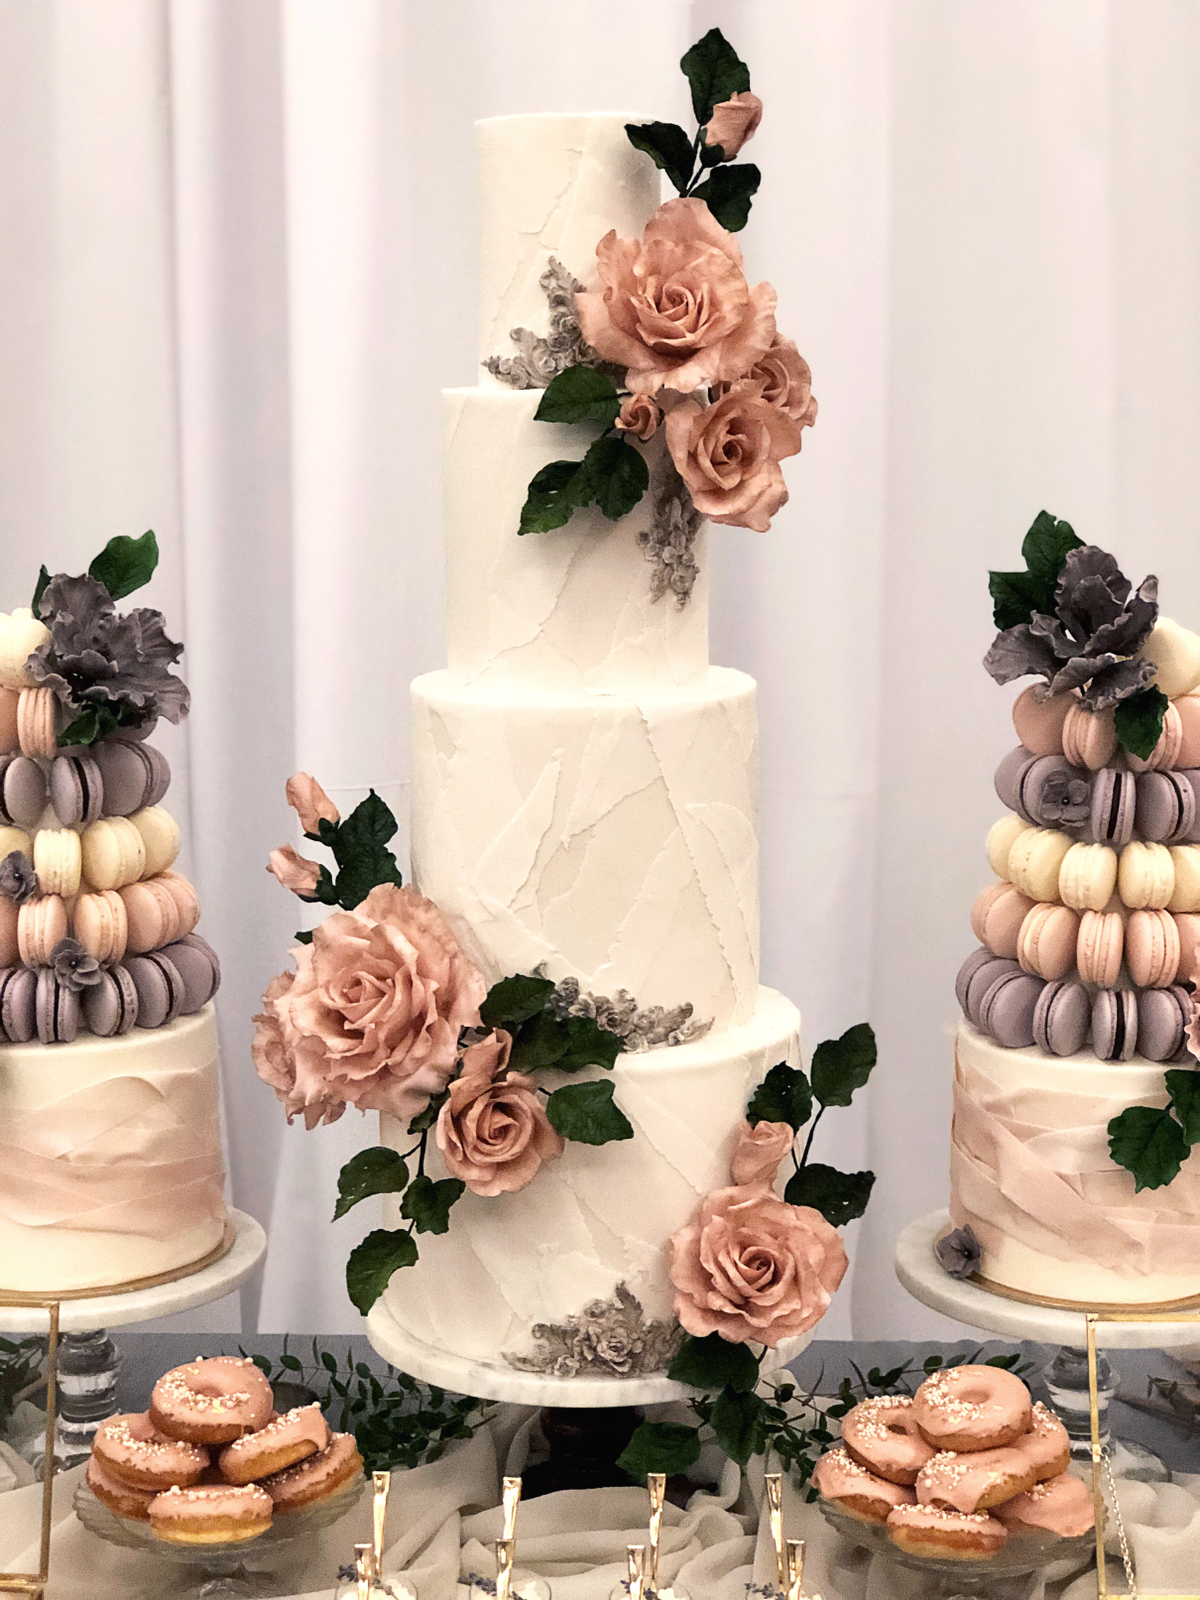 Whippt Desserts - Wedding Cake 2019